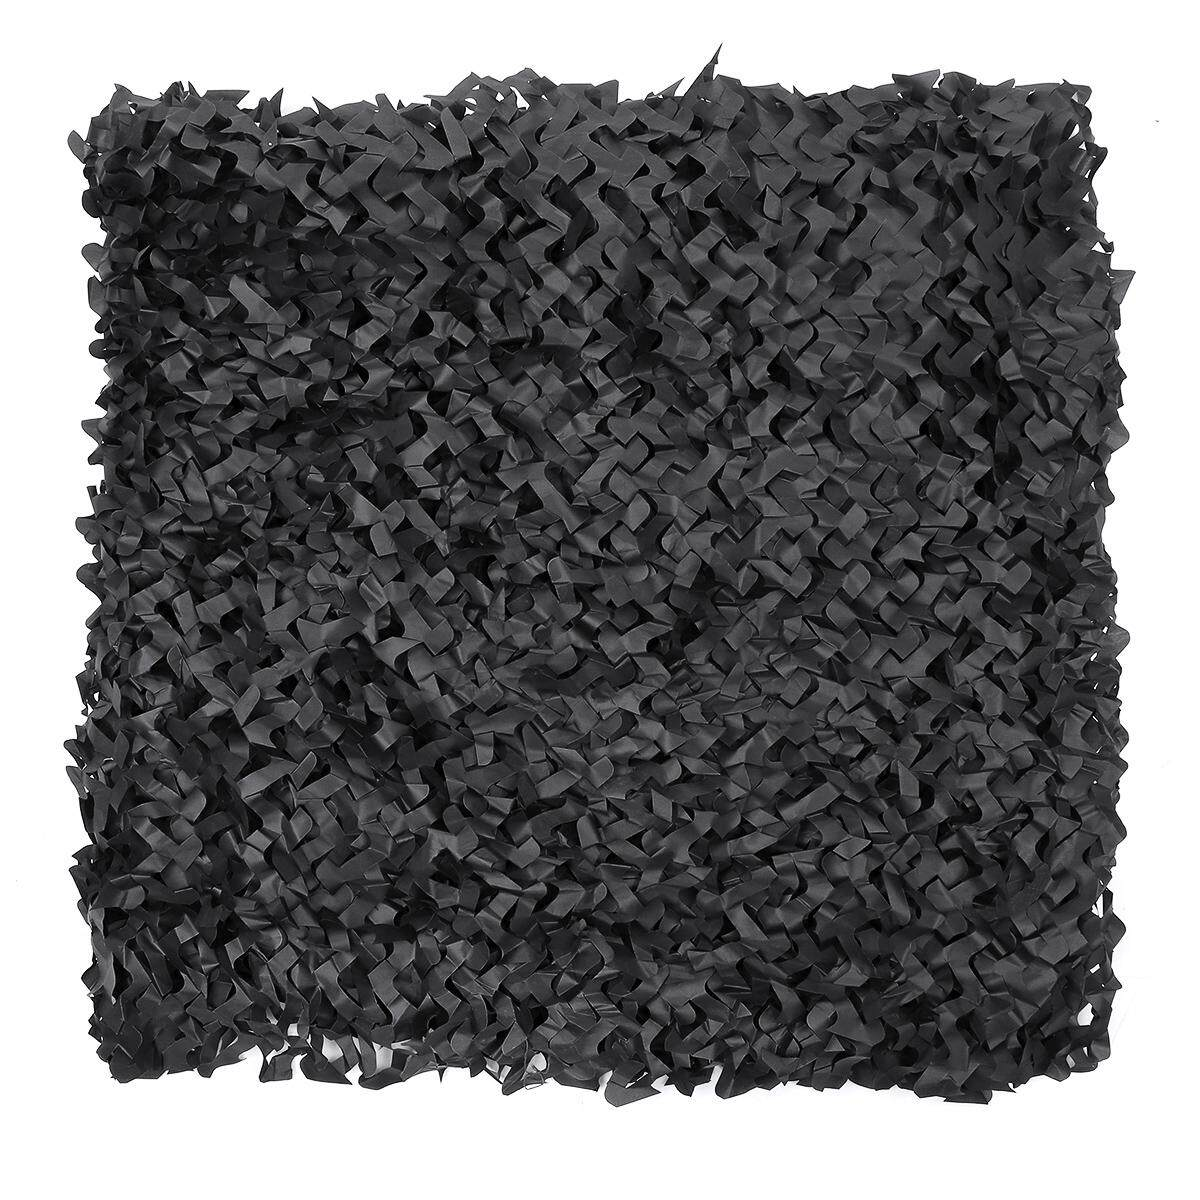 Black Camouflage Net Camping Hunting Garden Party Decor Photography Camo Nets#5m x 1.5m